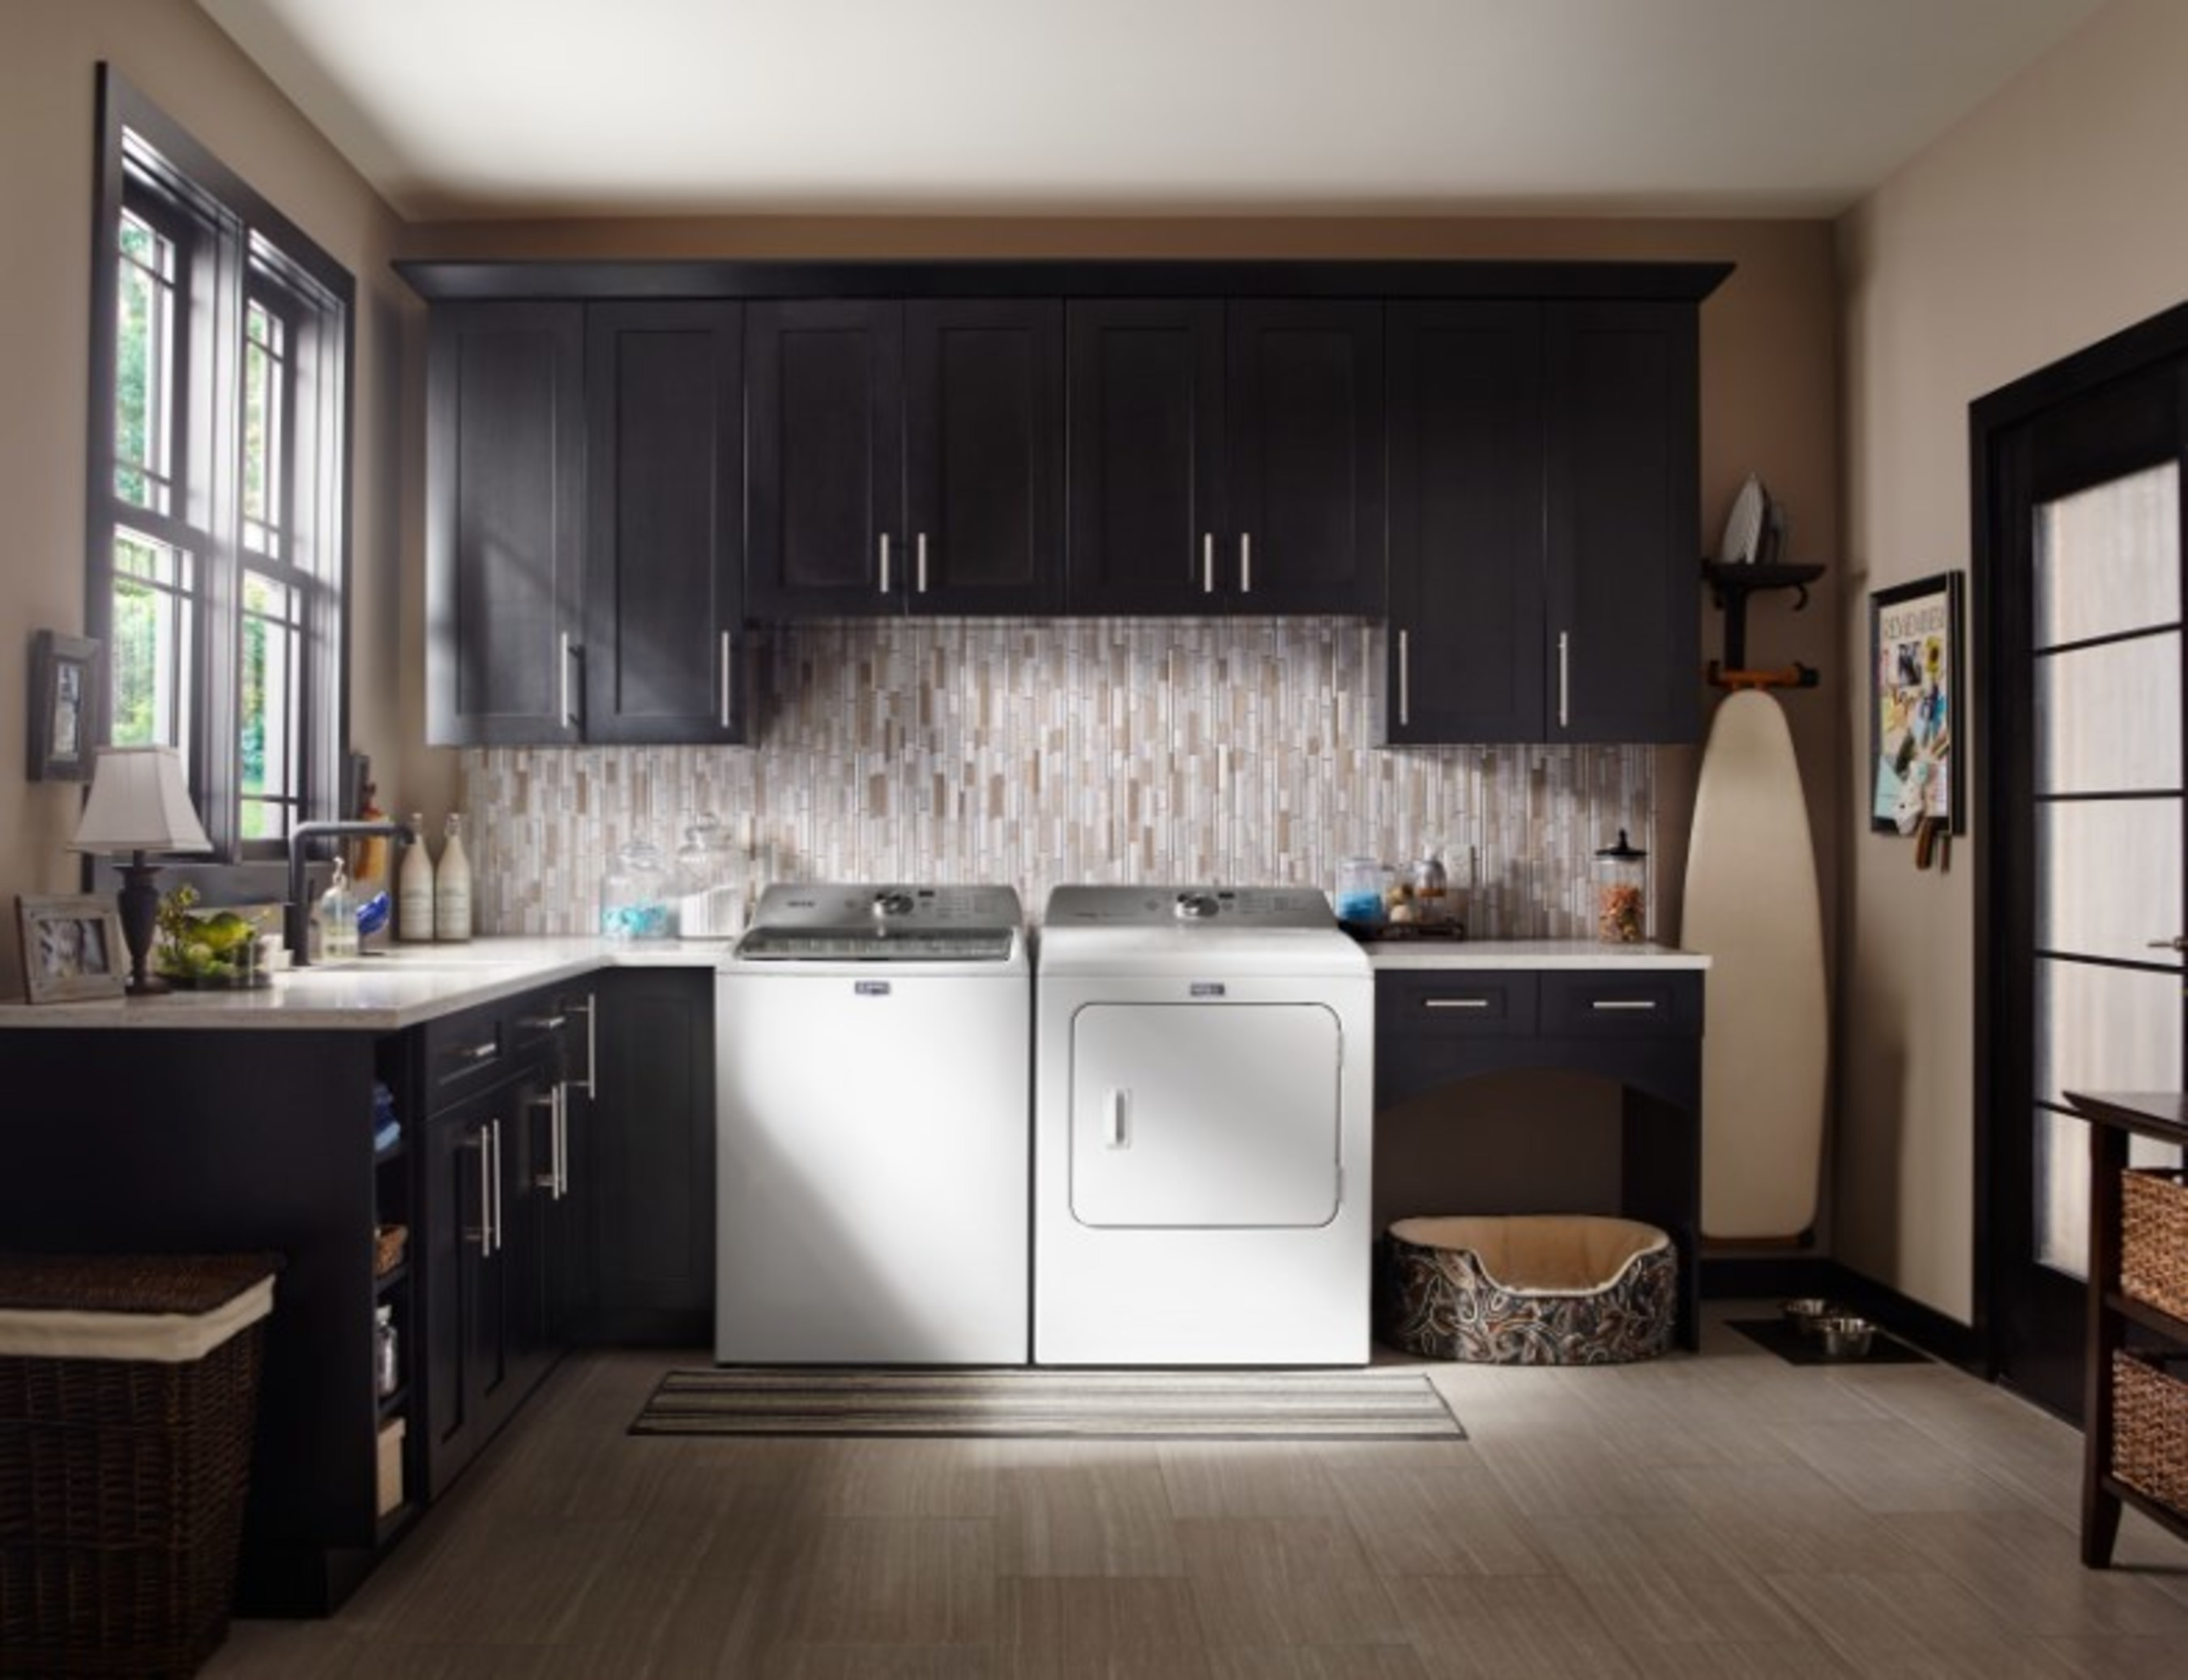 Maytag Introduces New Top Load Washer and Dryer to Handle Large, Tough Loads